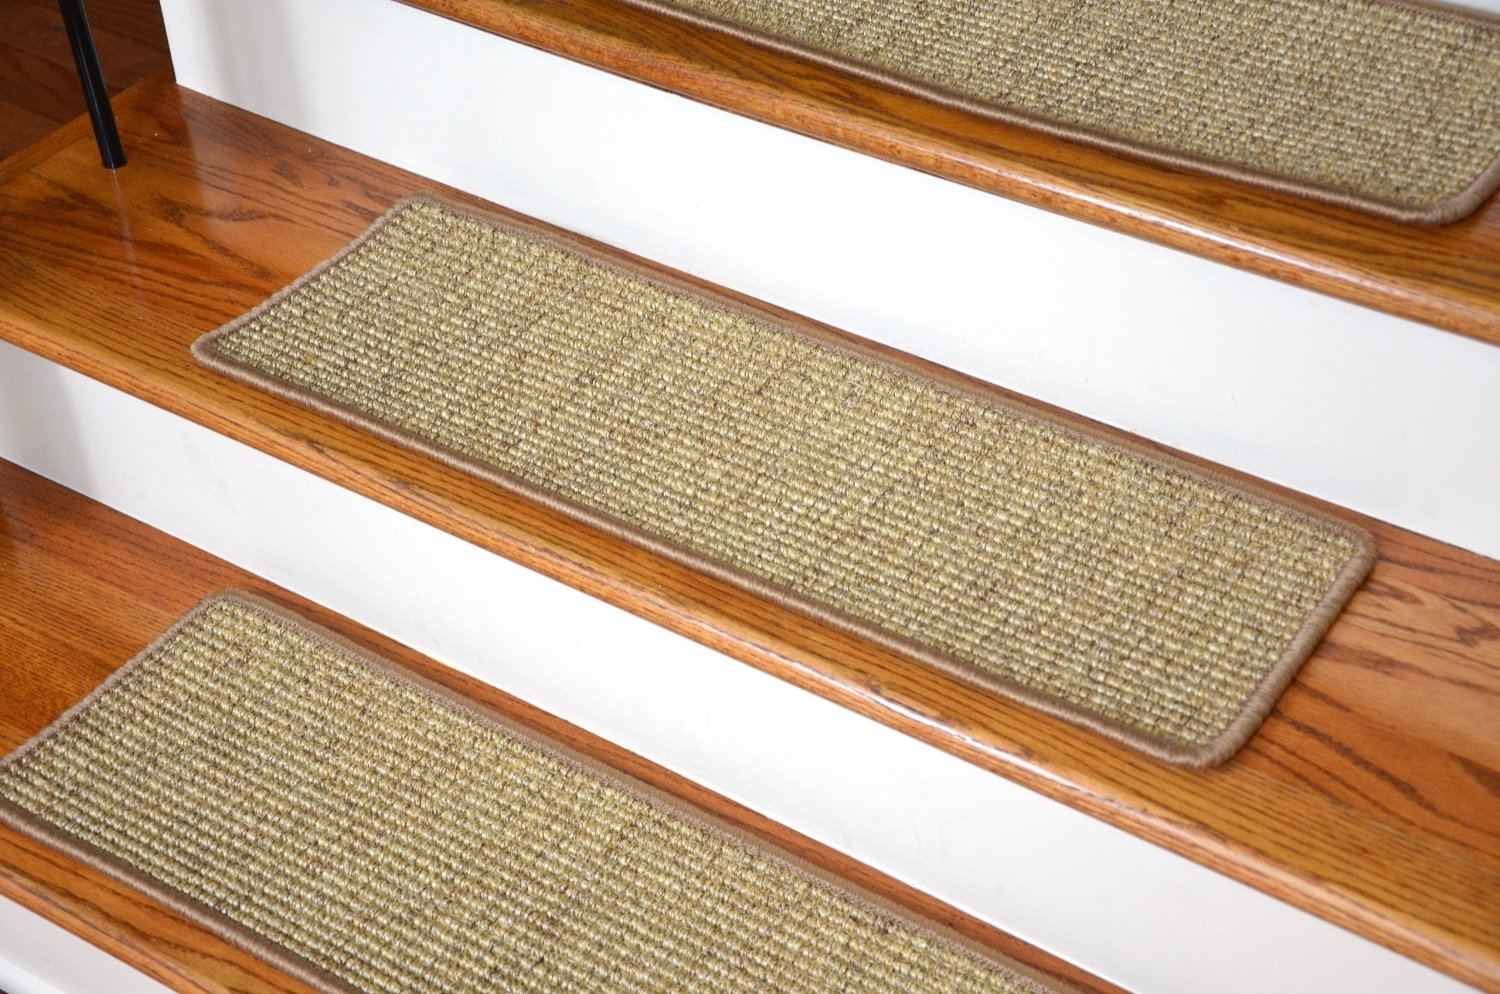 Easy Installing Carpet Stair Treads Stair Design Ideas For Clear Stair Tread Carpet Protectors (Image 10 of 15)